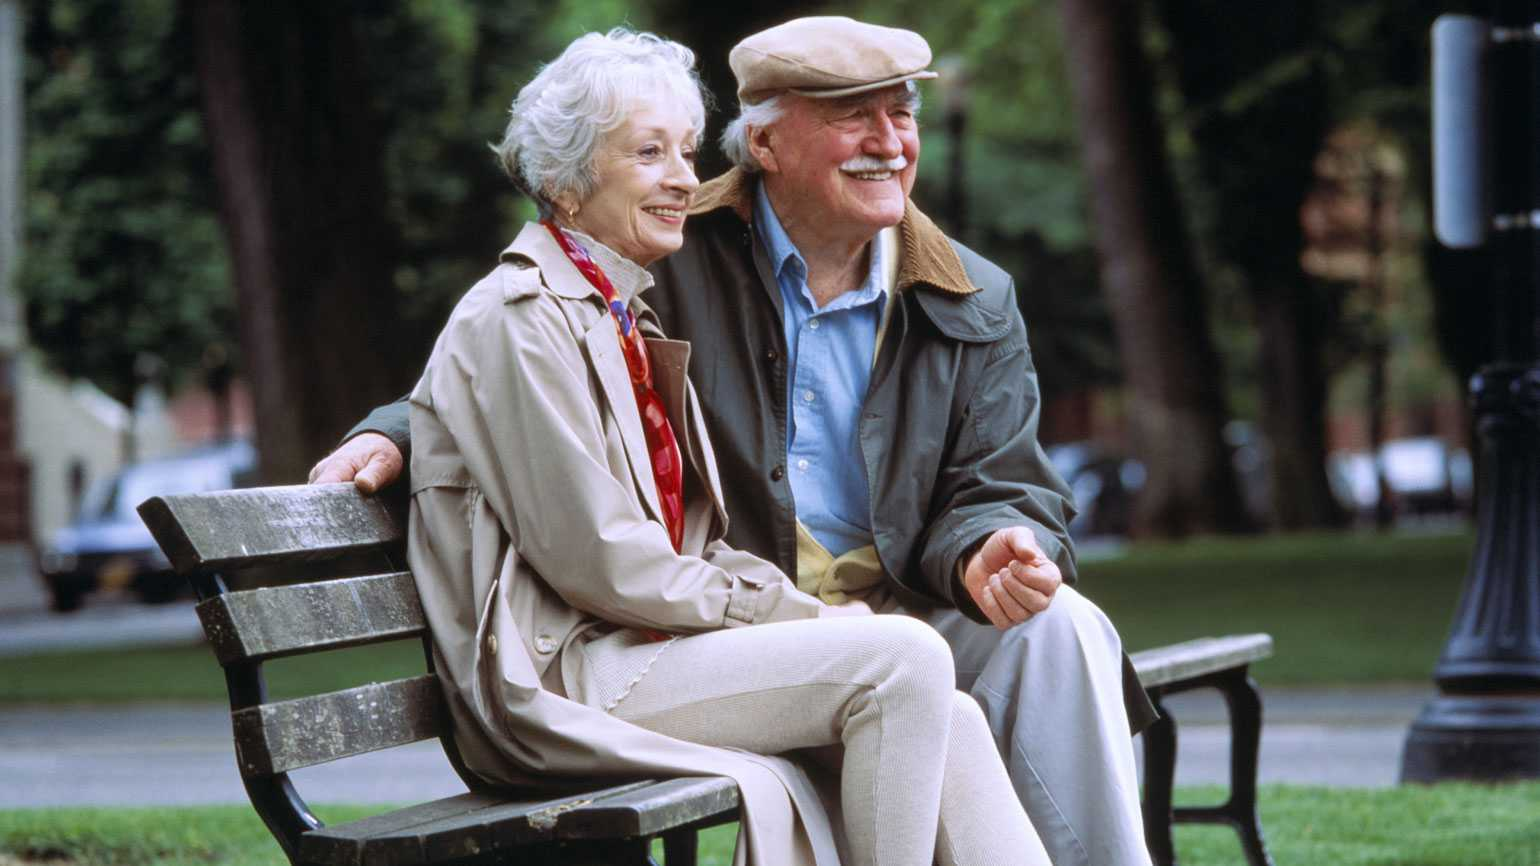 A mature couple enjoy an outing in the park.